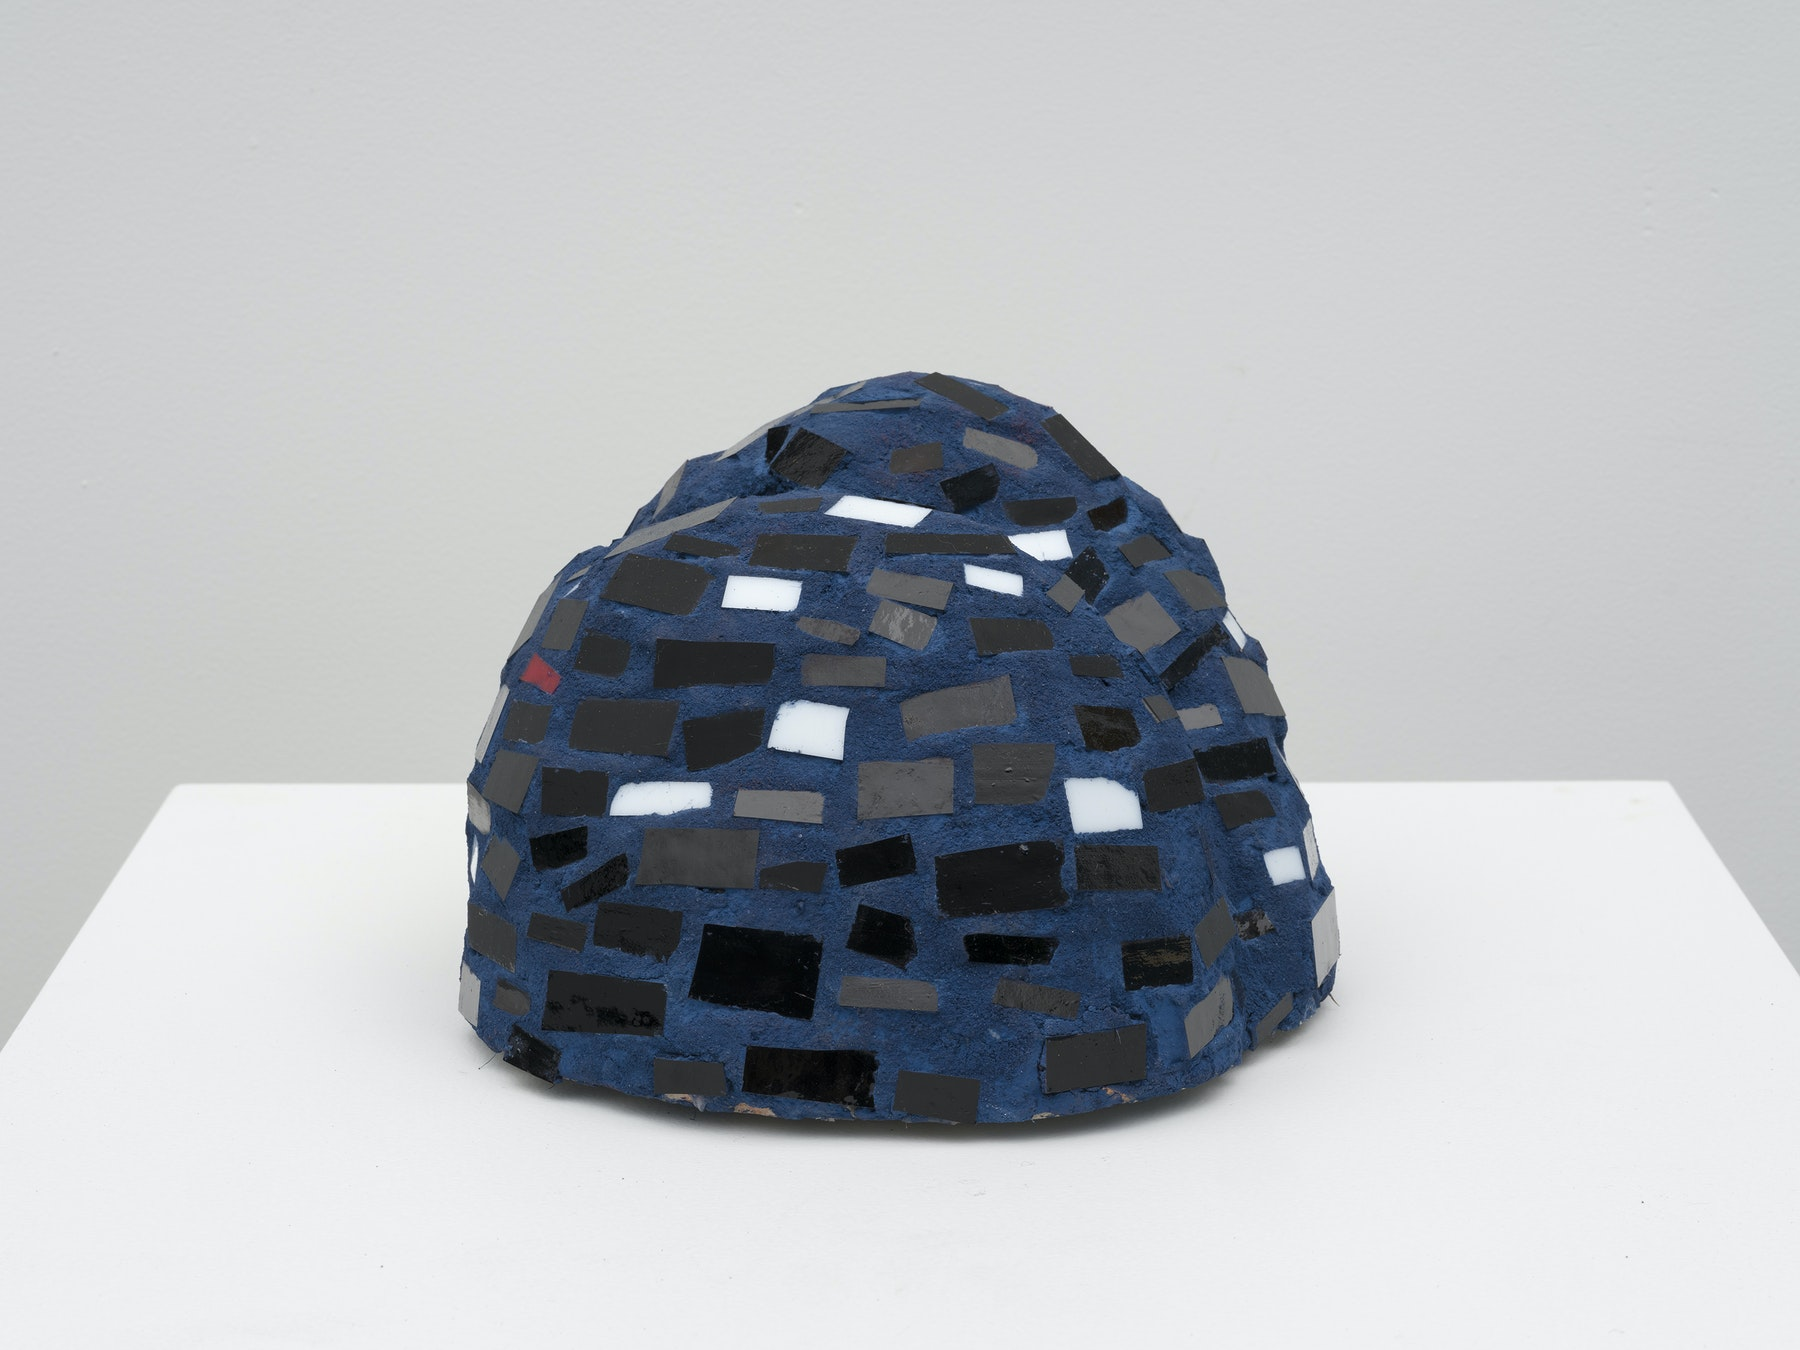 "Akina Cox ""Niki (Blue, Black, White),"" 2020 Glass, clay, grout, cement 6.75 x 8.75 x 9"" [HxWxD] (17.15 x 22.23 x 22.86 cm) Inventory #WS1046 Photo credit: Jeff Mclane"